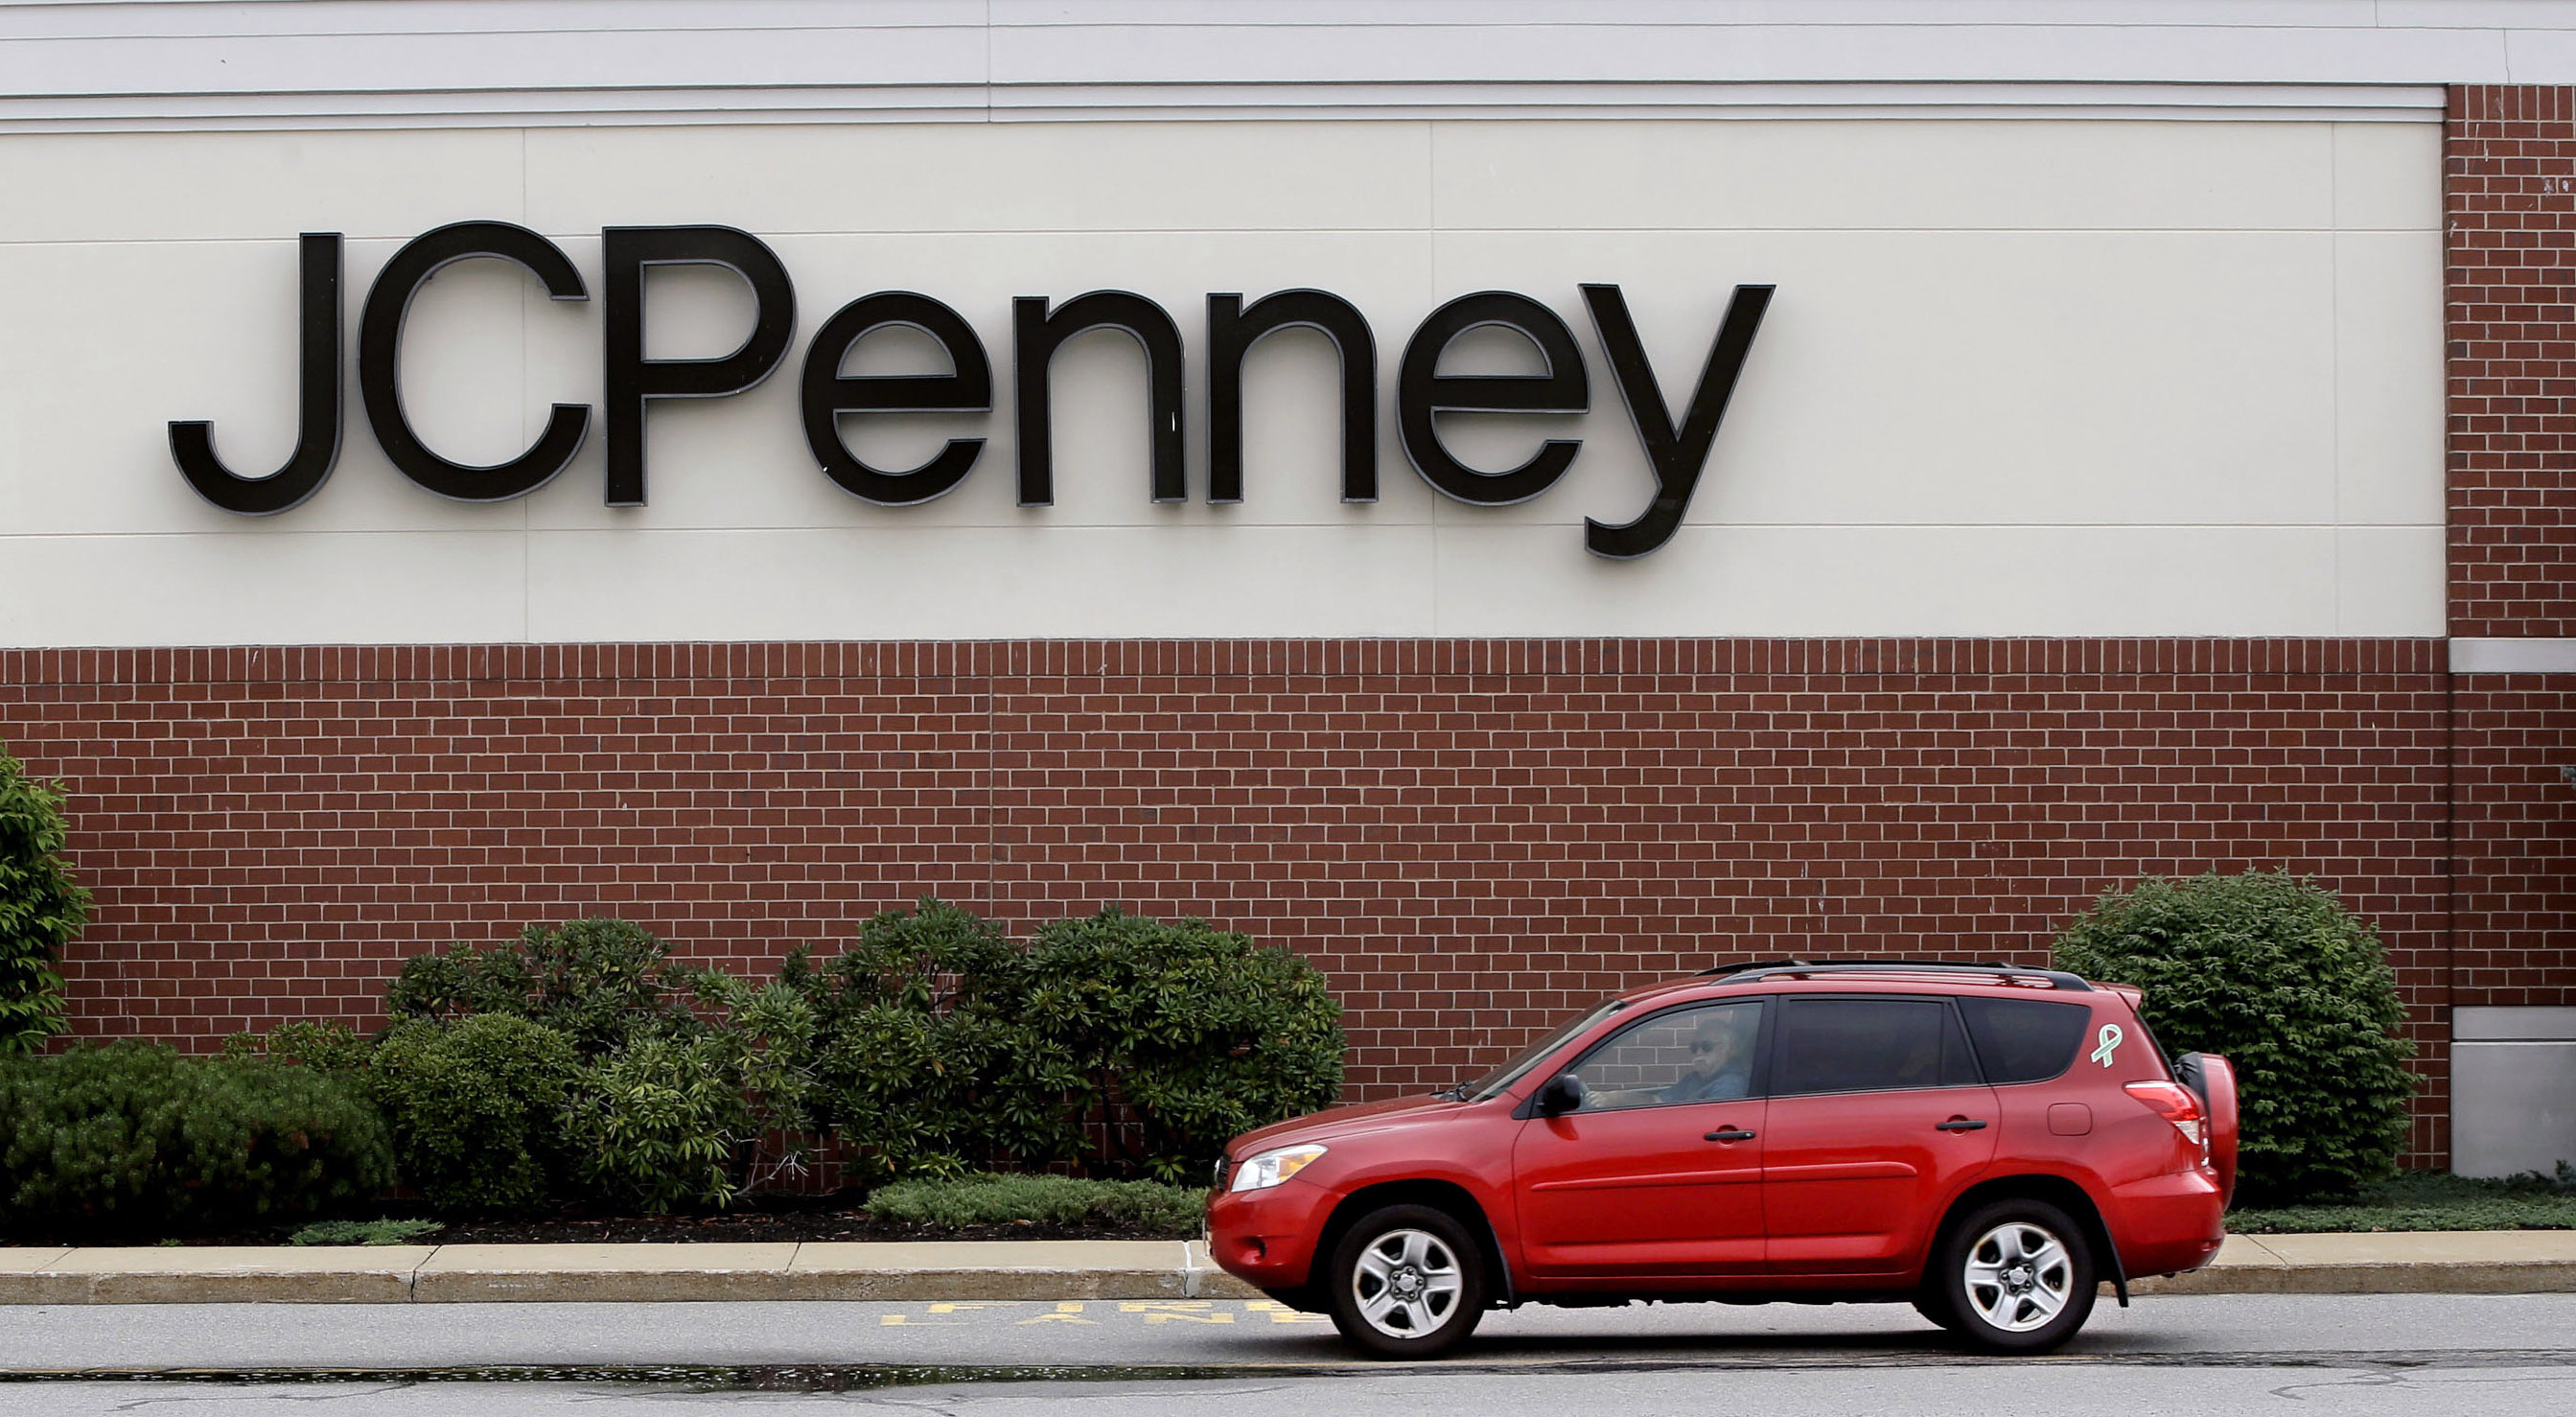 Jcp credit center login - J C Penney Lists 138 Store Closings Including 9 In Texas Retail Dallas News